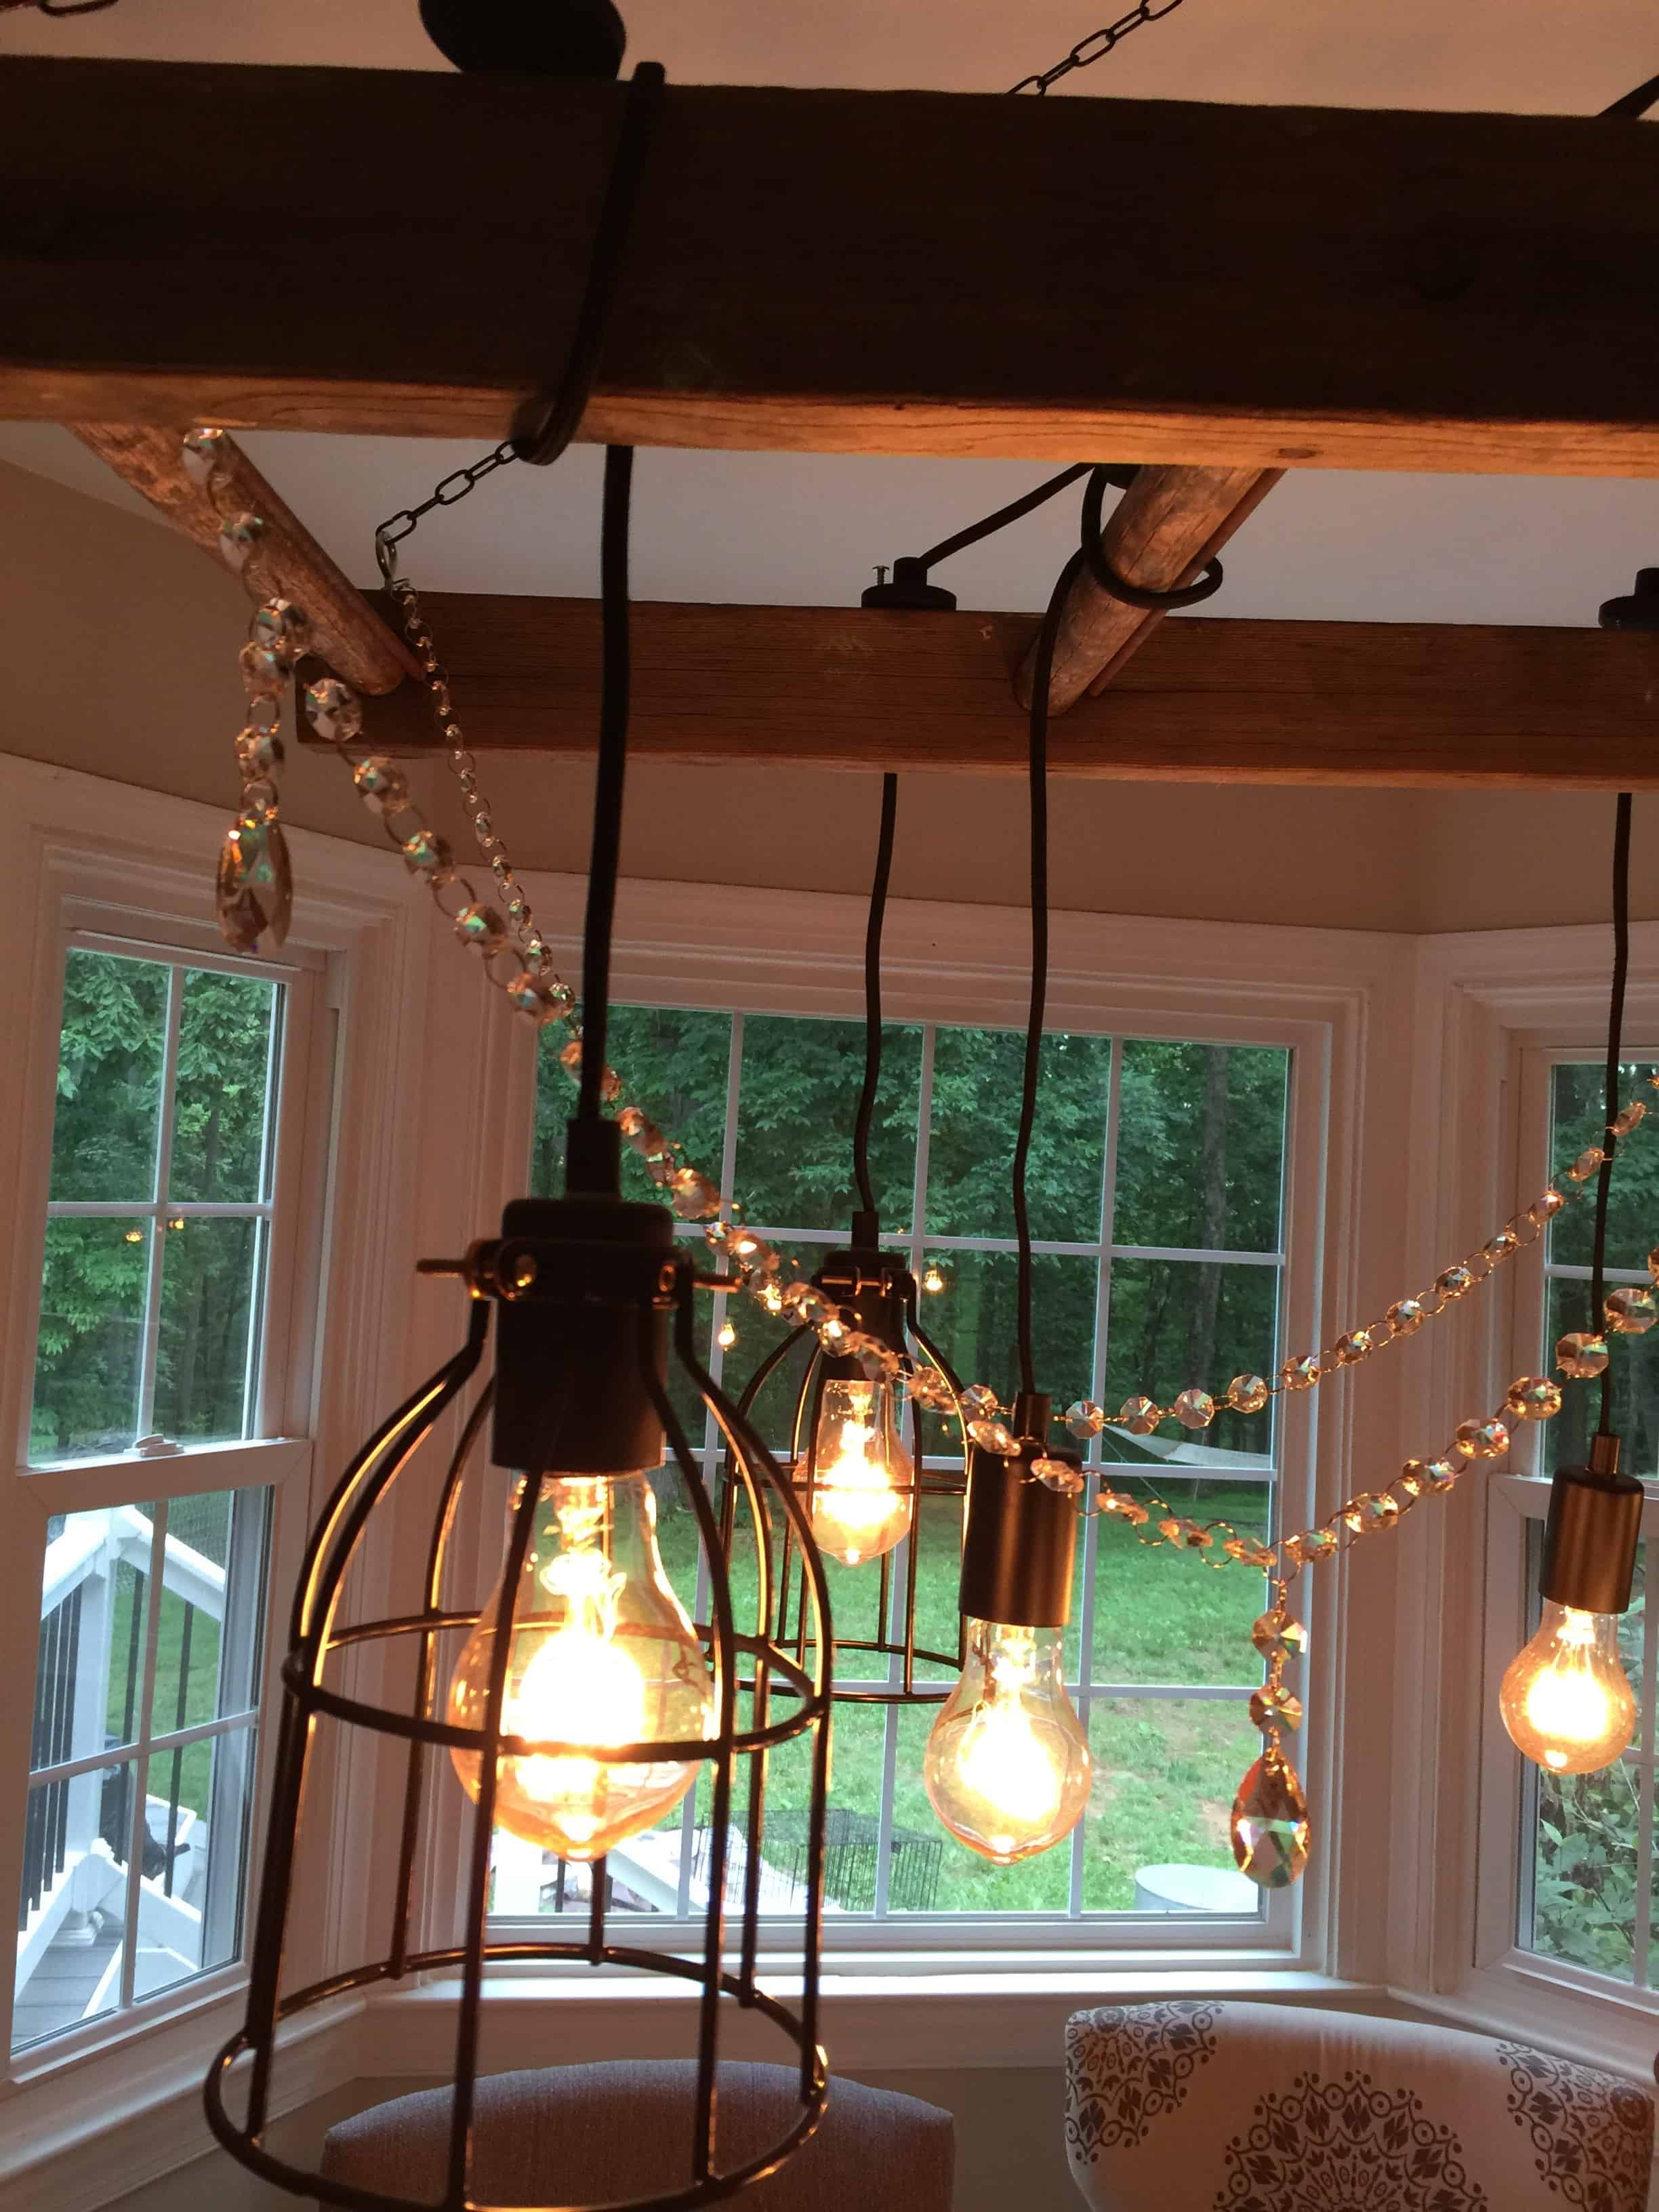 Saved by Scottie rustic chandelier adding crystals